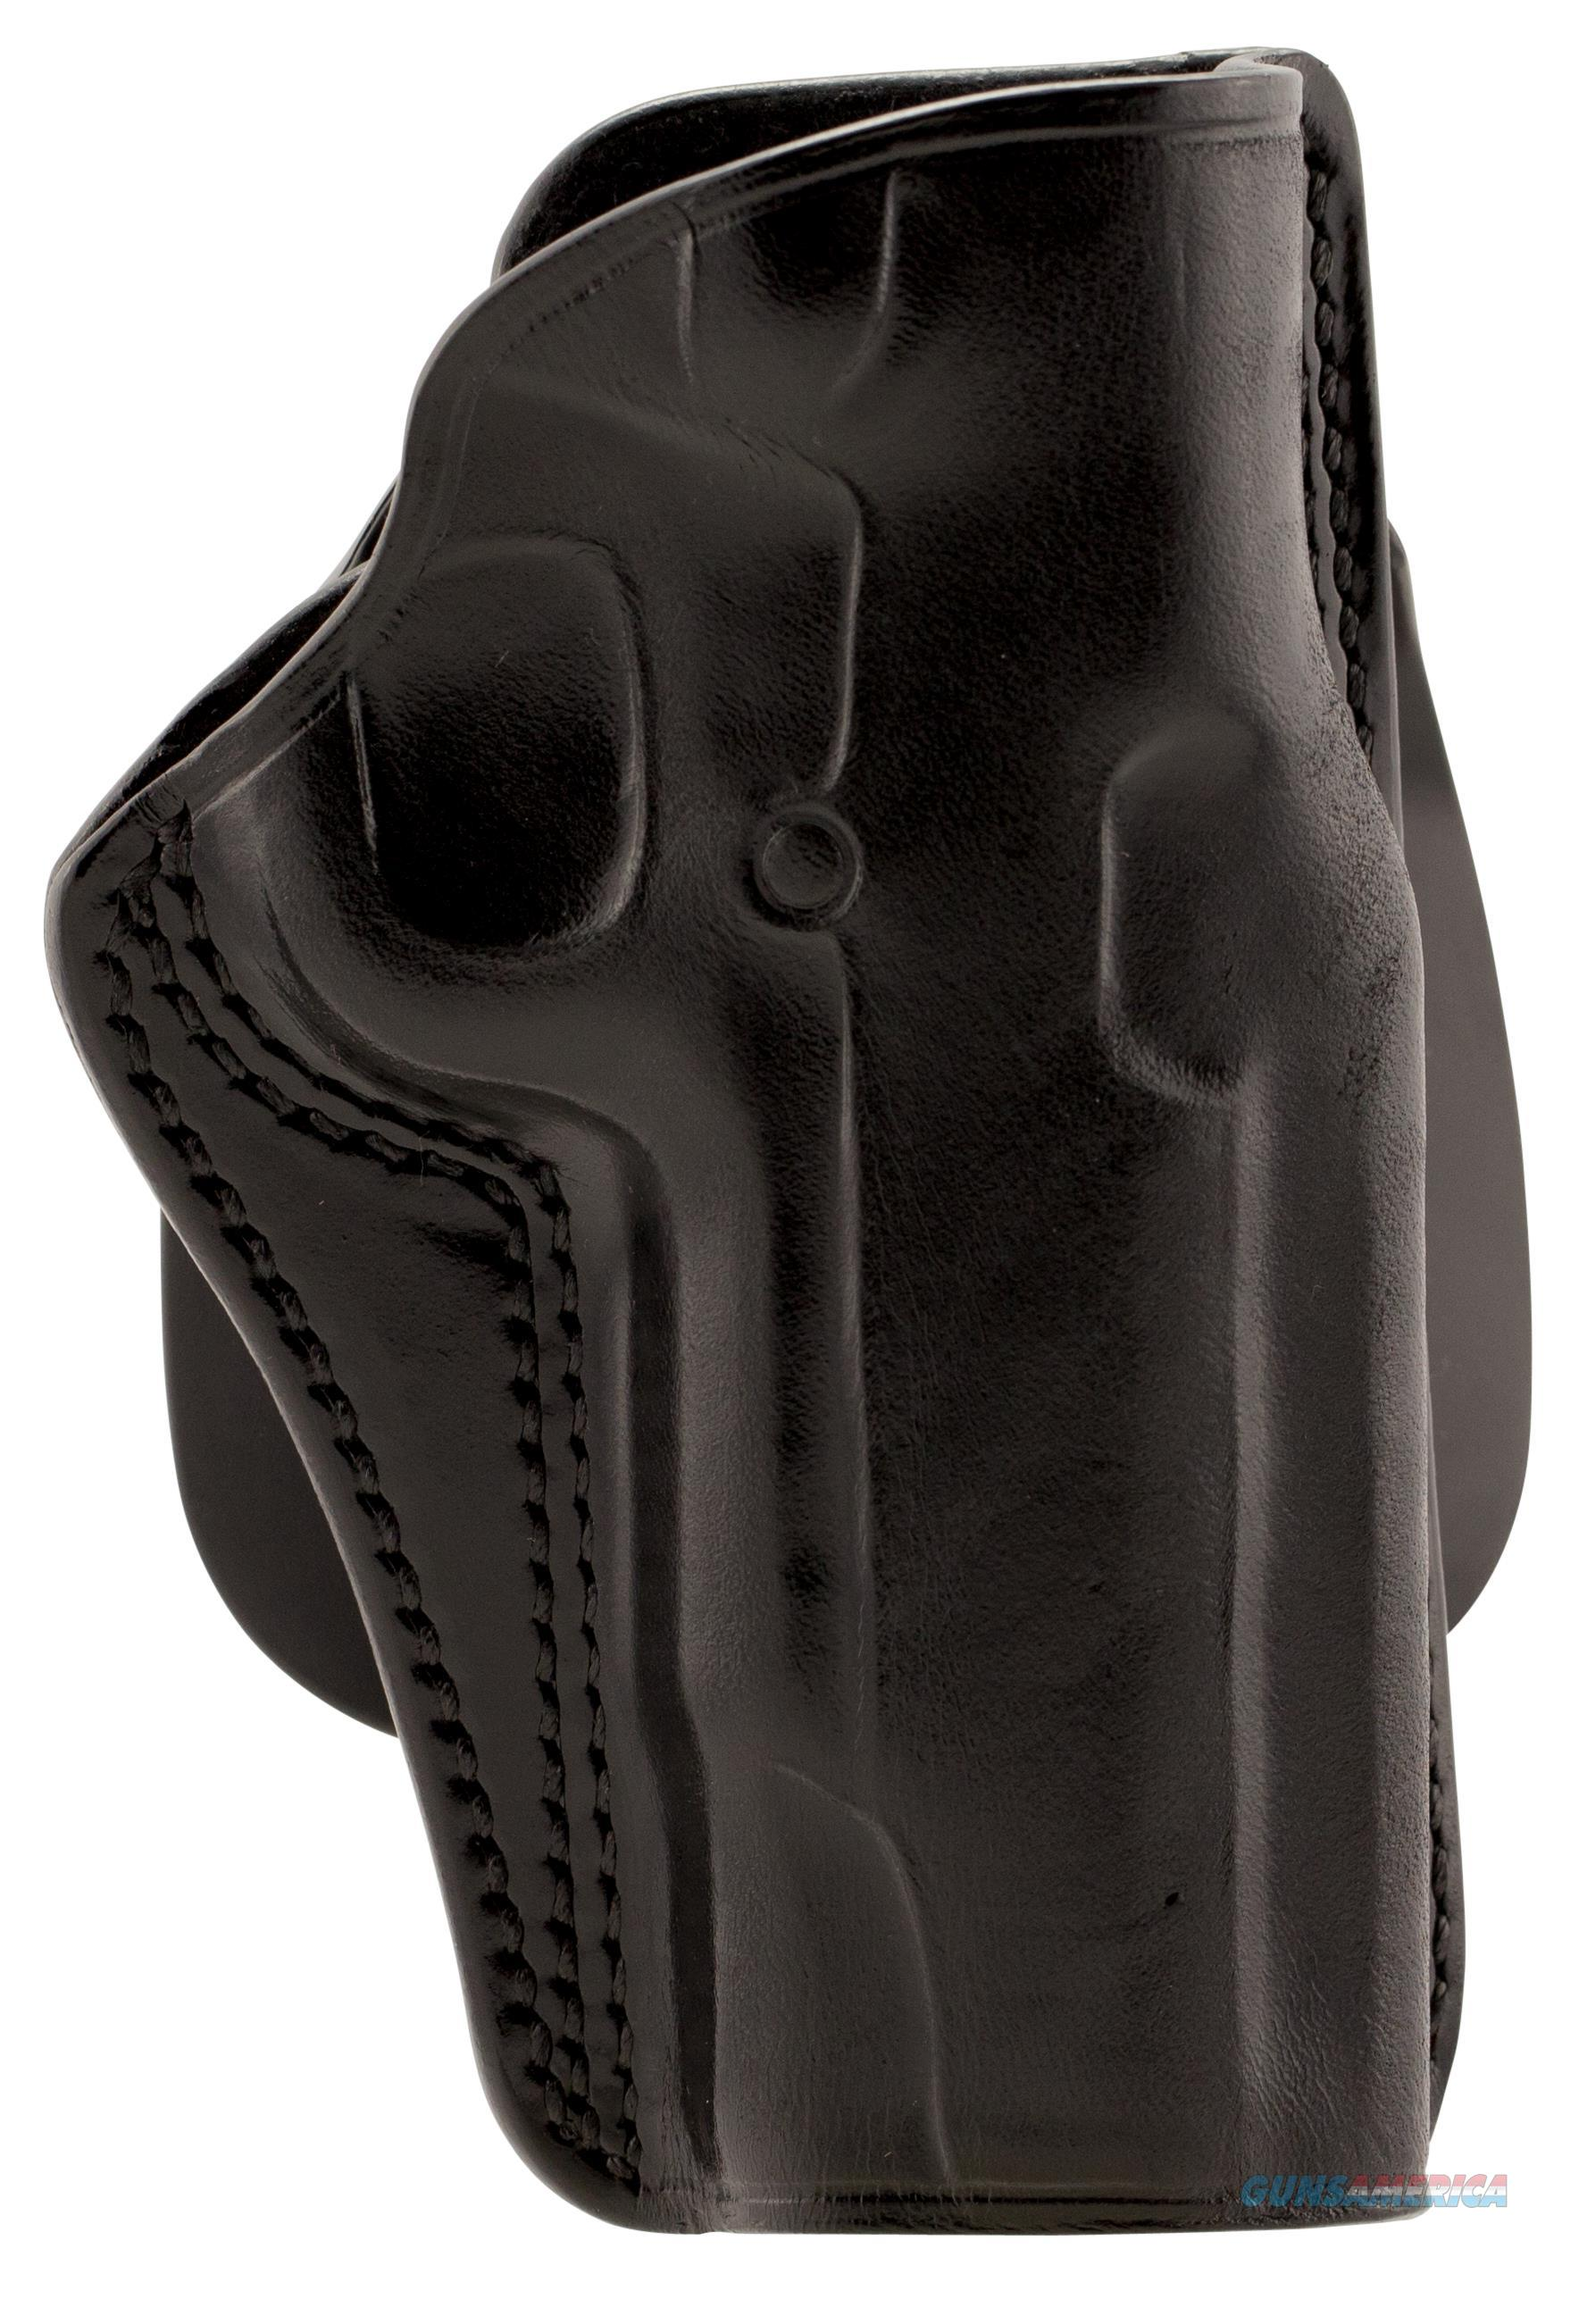 "Galco Ccp266b Concealed Carry 266B Fits Belt Width 1"" - 1.75"" Black Leather CCP266B  Non-Guns > Holsters and Gunleather > Other"